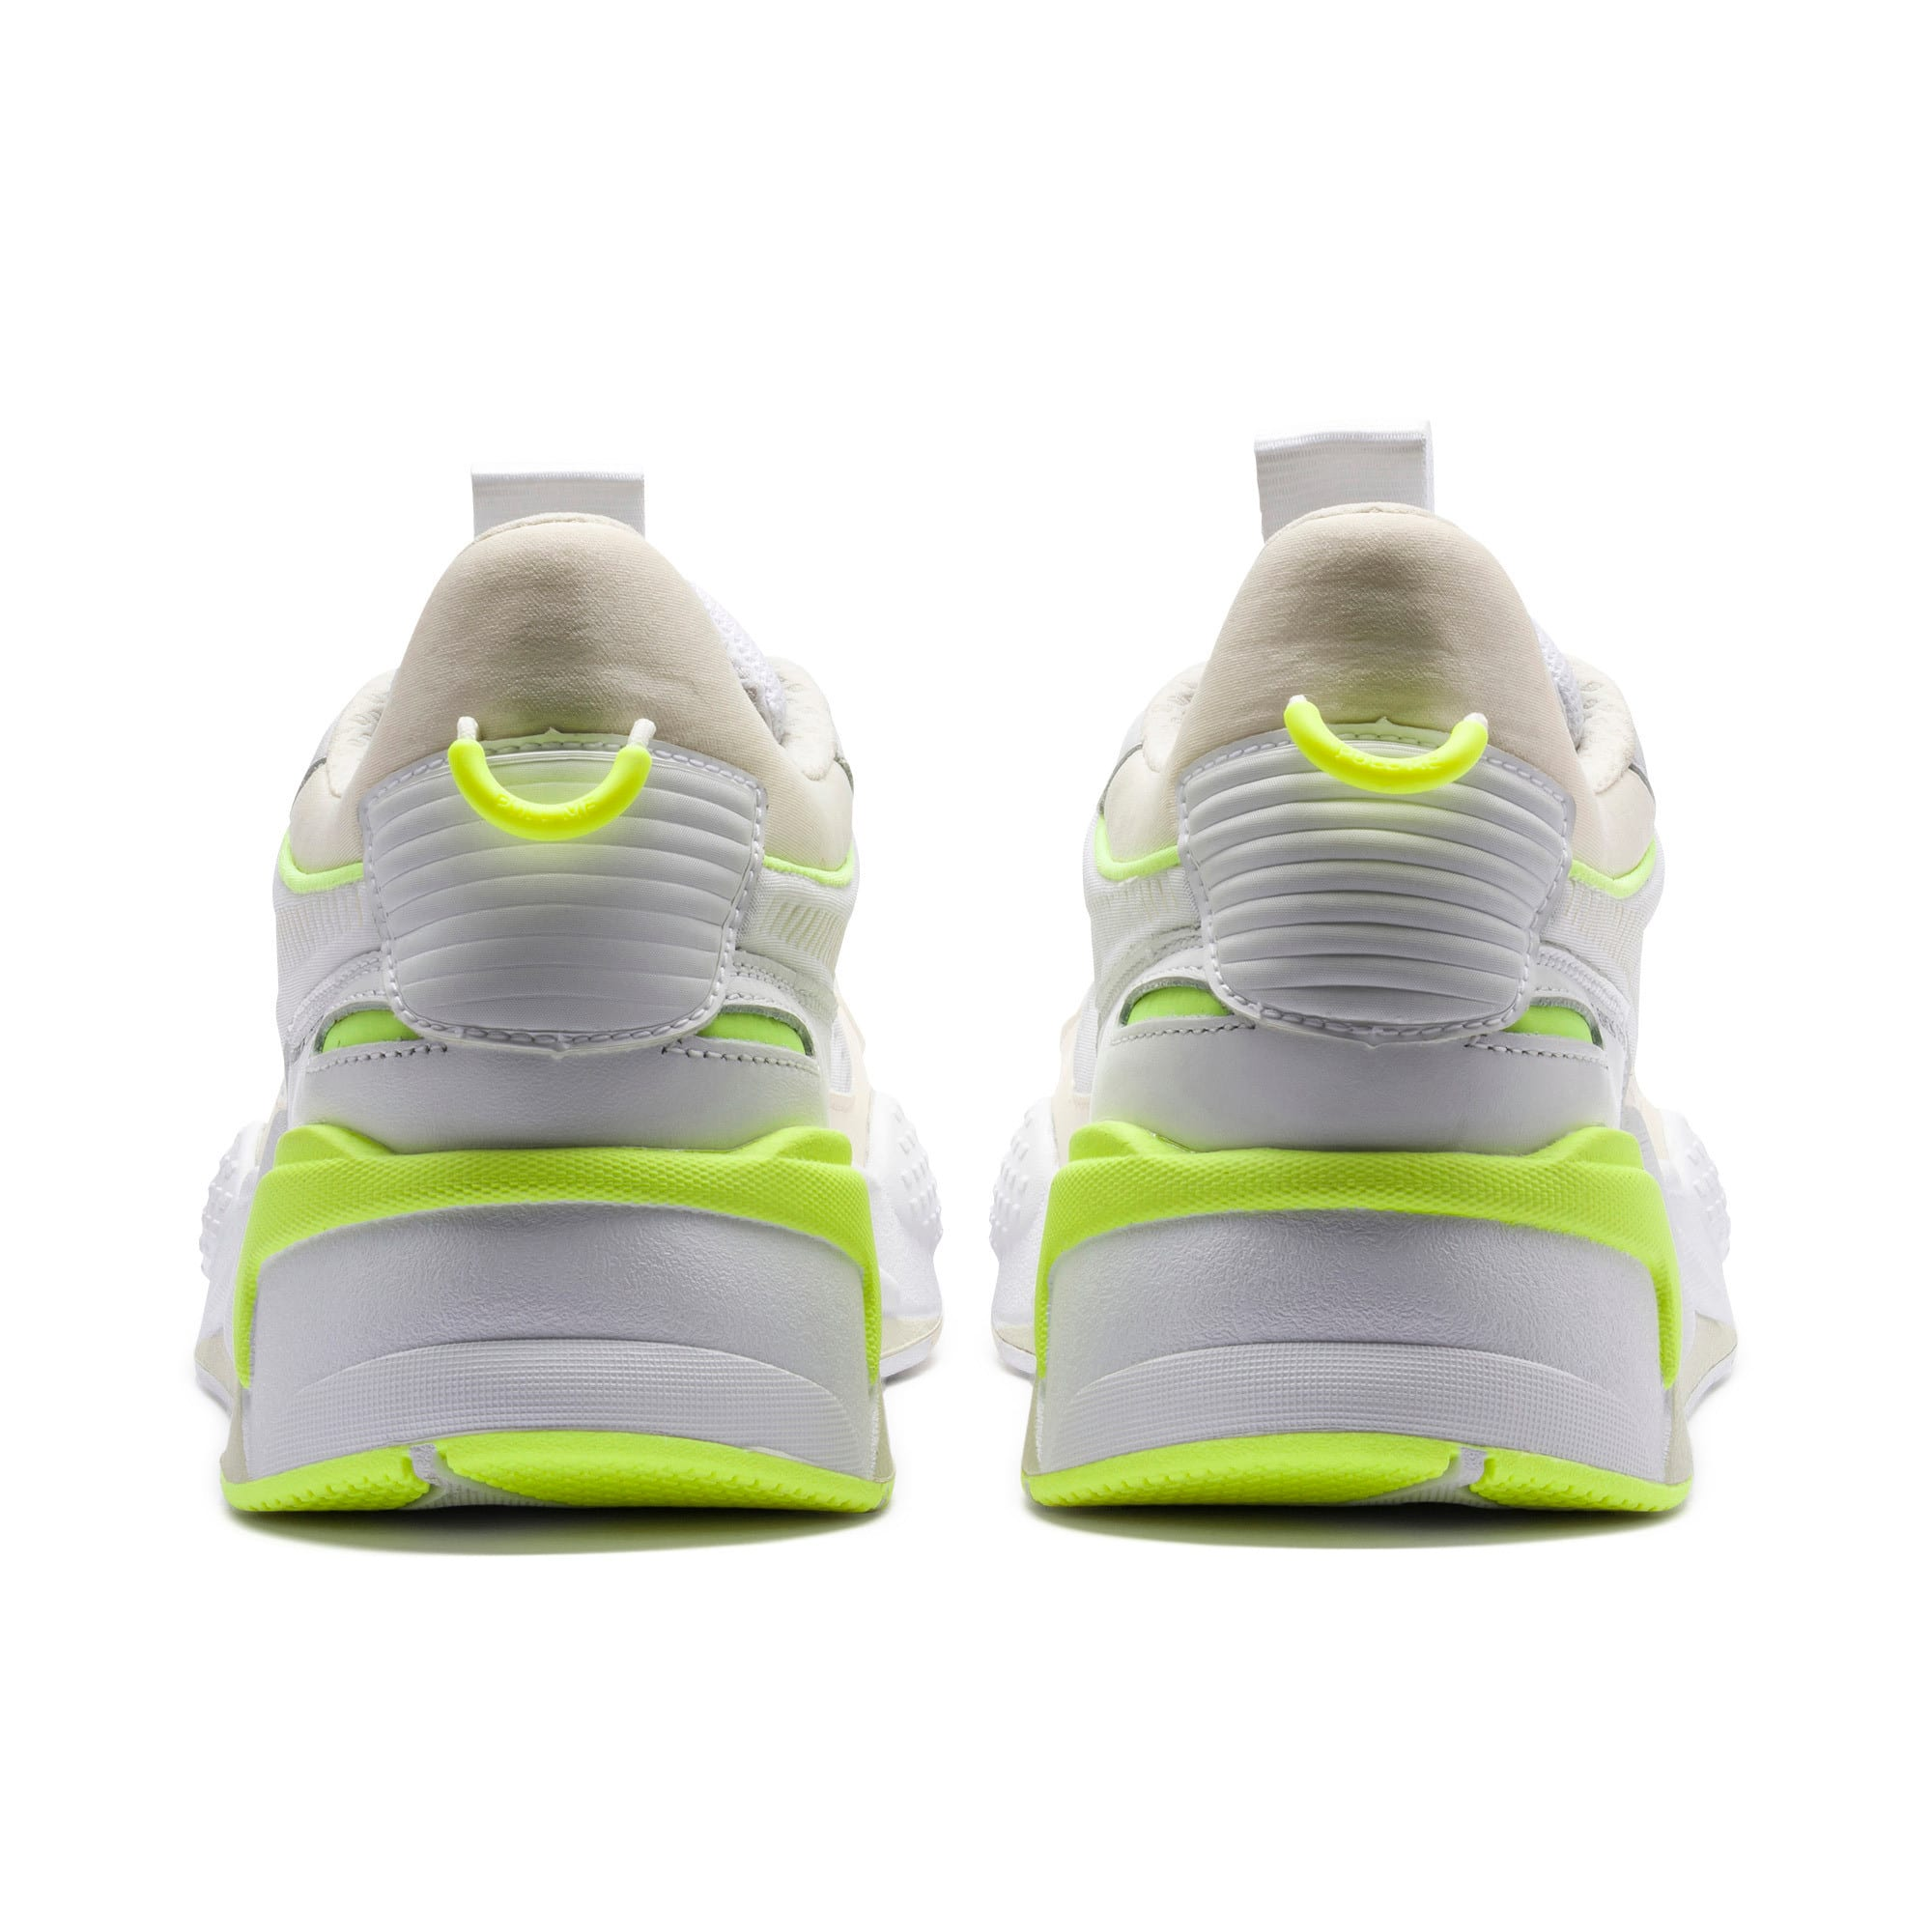 Thumbnail 3 of RS-X Tracks Trainers, Puma White-Whisper White, medium